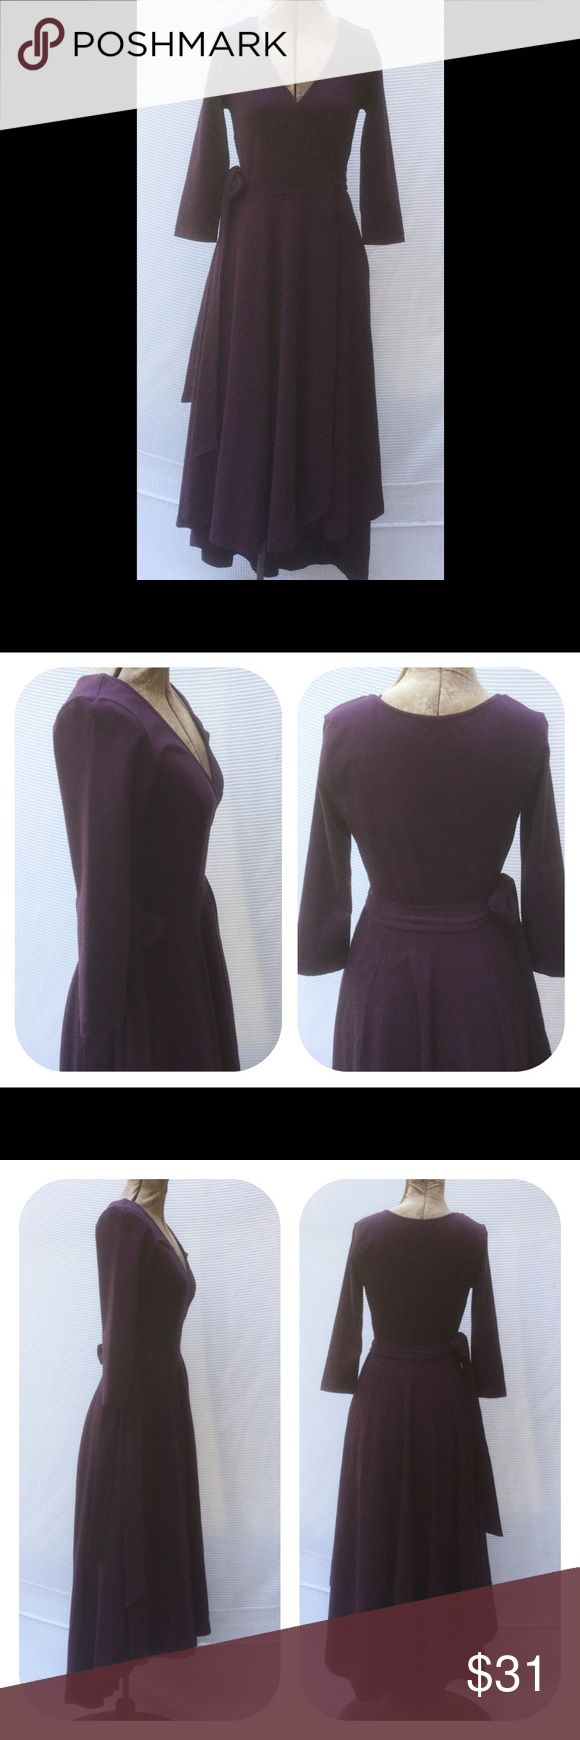 "New Eshakti Purple Knit Fit Flare Wrap Dress XS 2 New Eshakti purple knit fit & flare midi wrap dress Size 2 Measured flat: Underarm to underarm: 30"" Waist: 26""+ Length: 41"" & 51 ½"" Sleeve: 17""  Eshakti size guide for 2 bust: 33"" True wrap styling, wide surplice v neck, cross over skirt. Bracelet length sleeves, attached half ties at seamed waist, side seam pockets, high low hem. Cotton/spandex, woven jersey knit, light stretch. Machine wash. New w/ cut out Eshakti tag to prevent returning…"